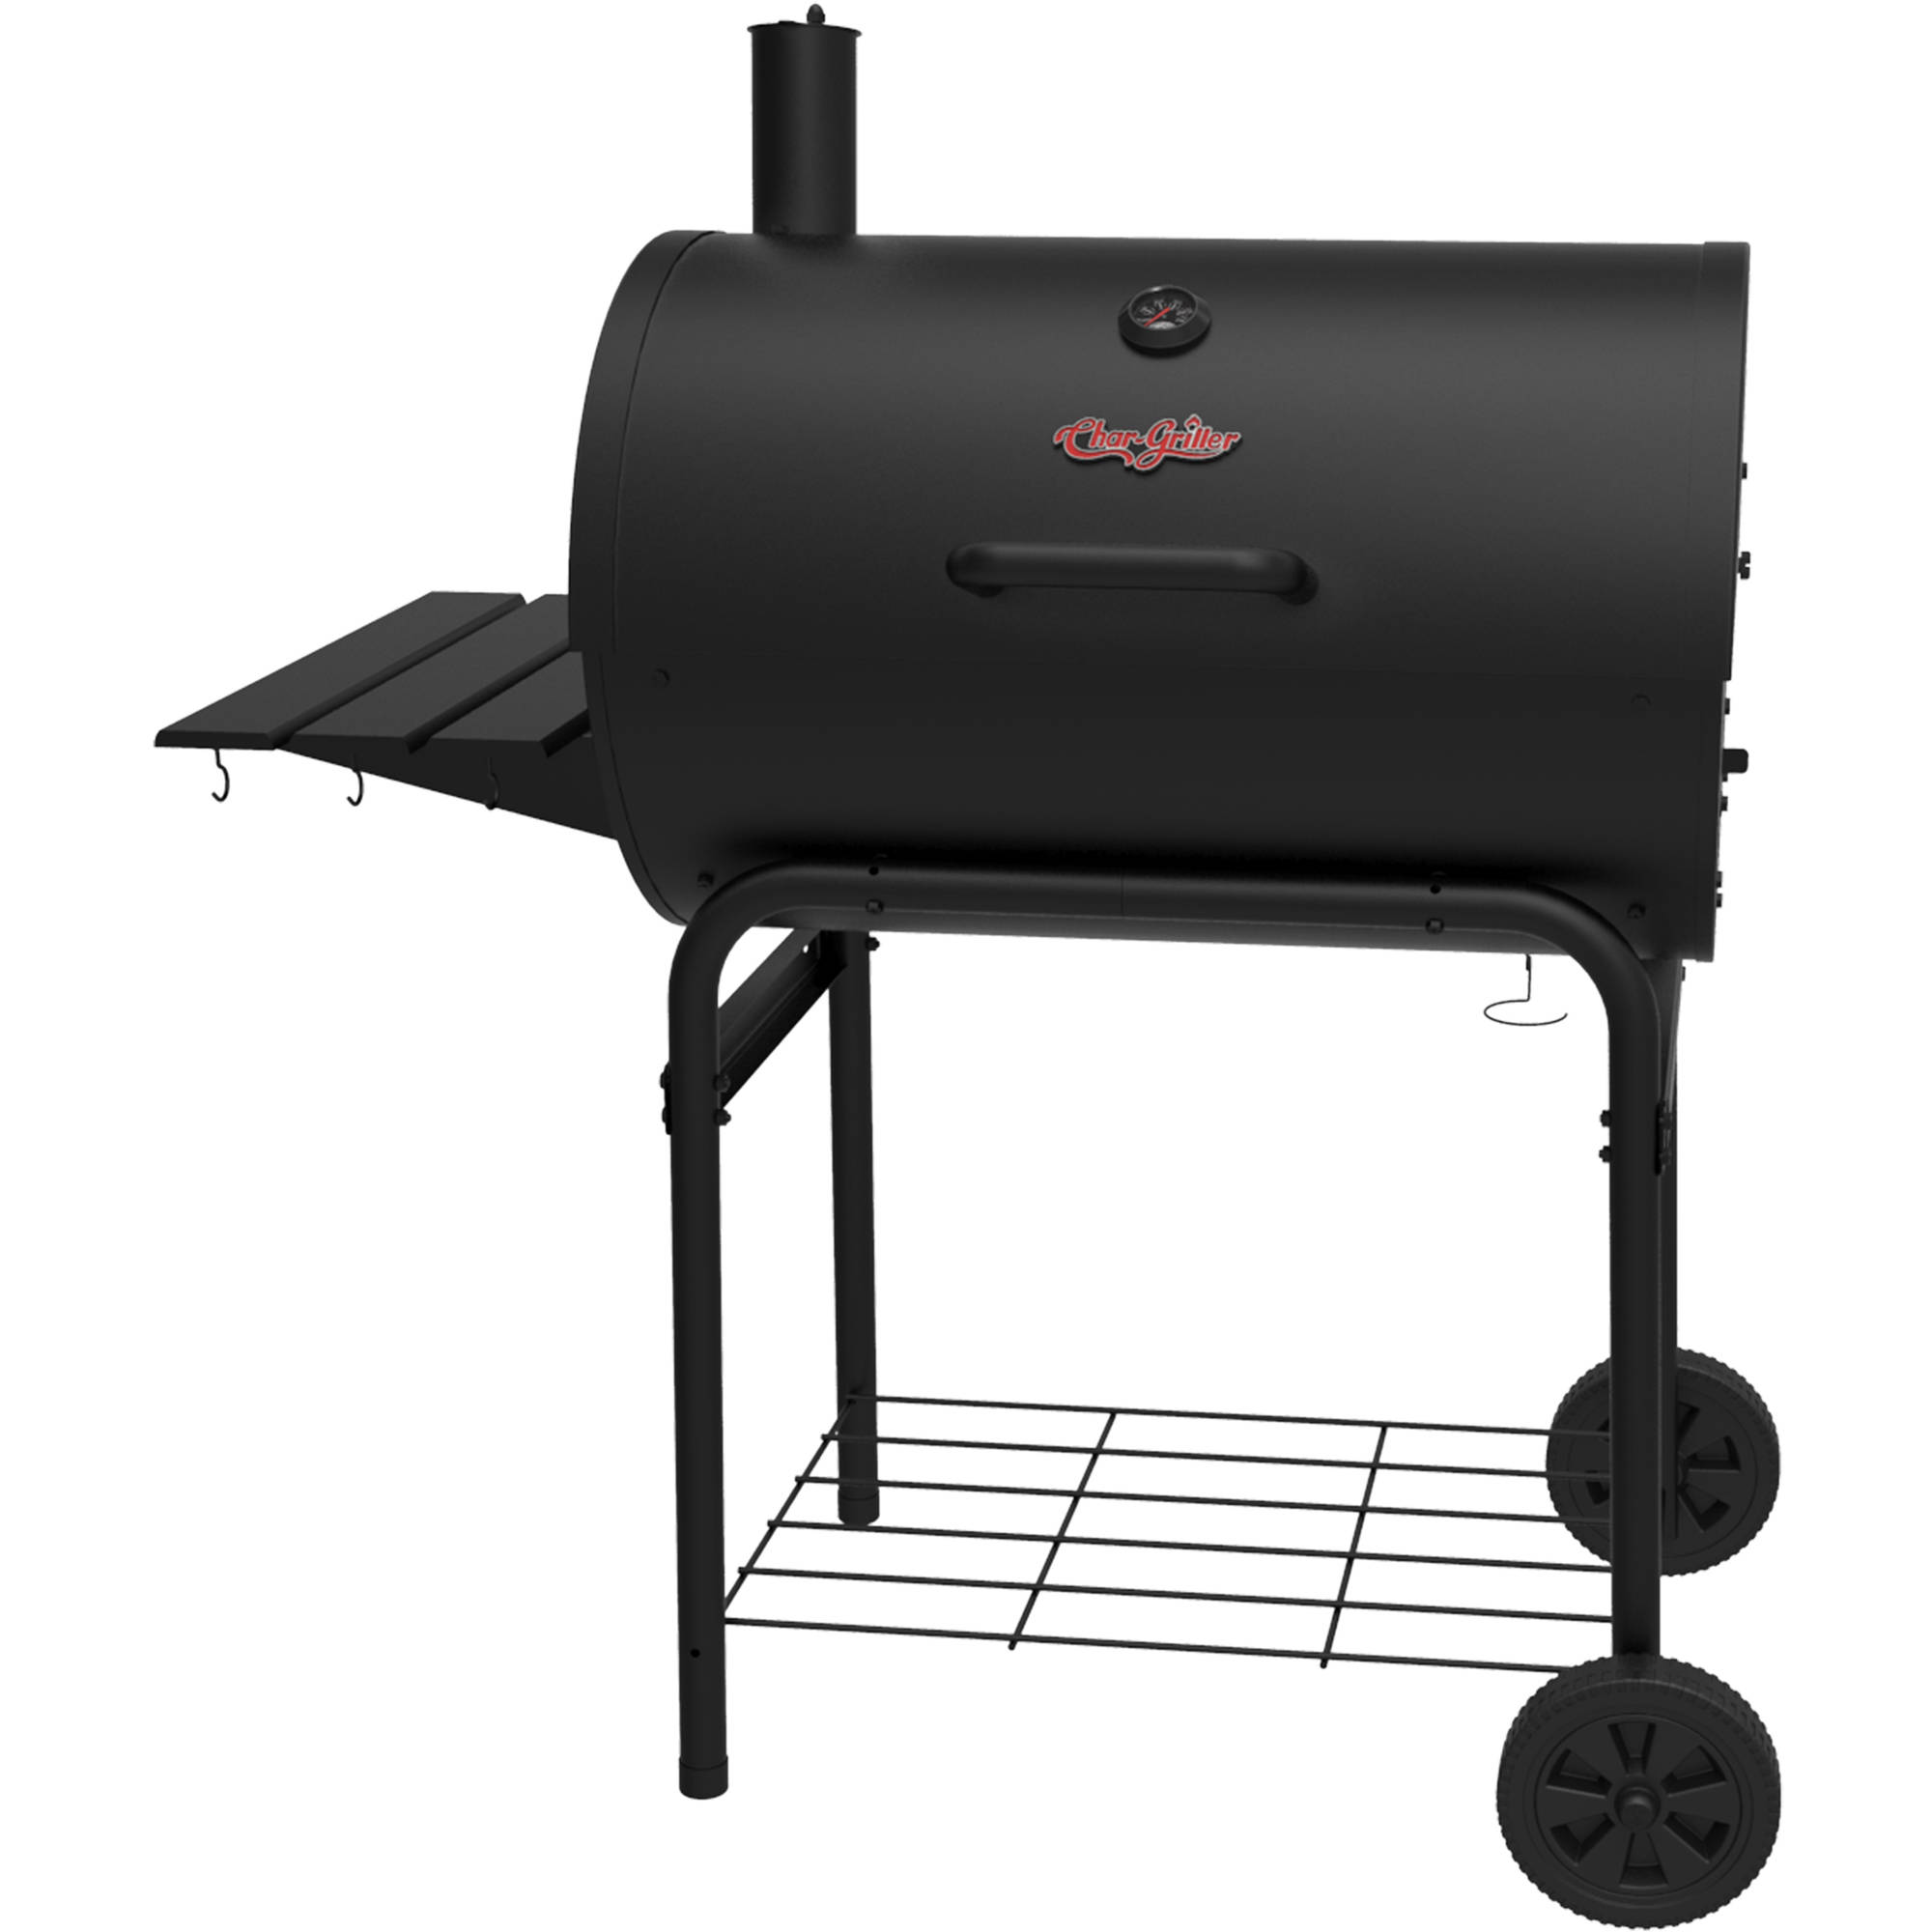 Char-Griller Deluxe Barrel Charcoal Grill